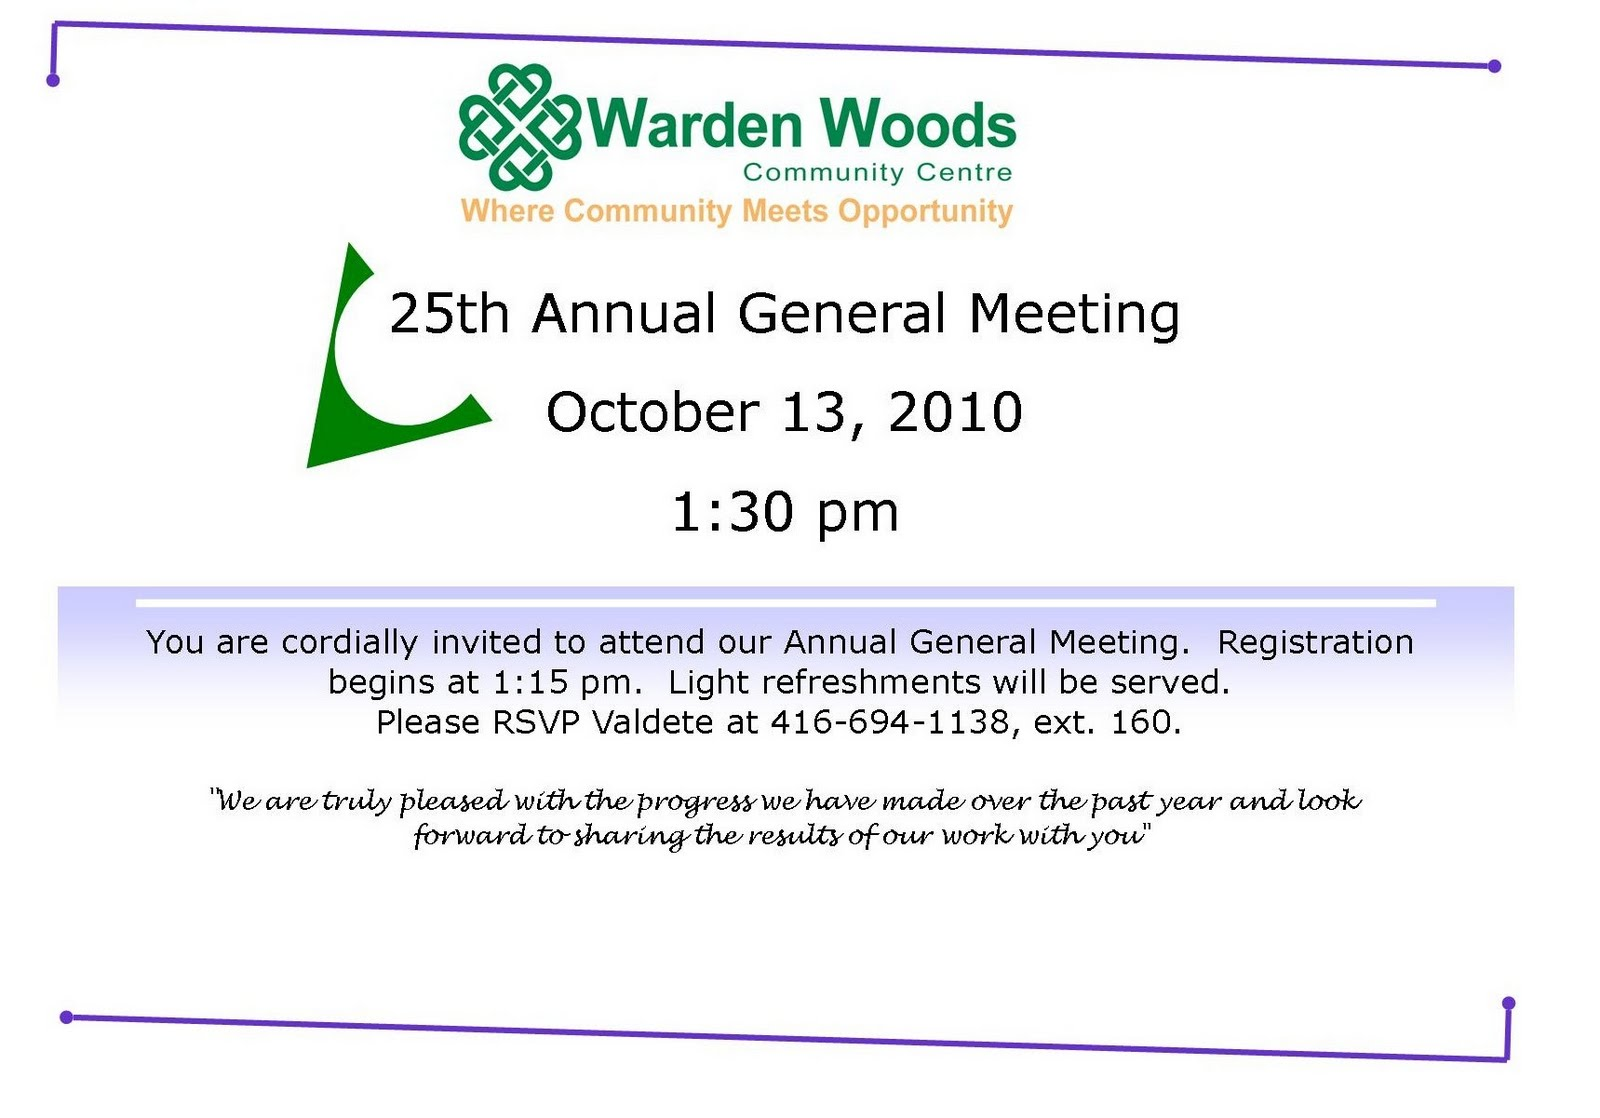 Invitation letter for agm meeting 28 images agm step annual invitation letter for agm meeting warden woods community centre you re invited to our annual general stopboris Image collections